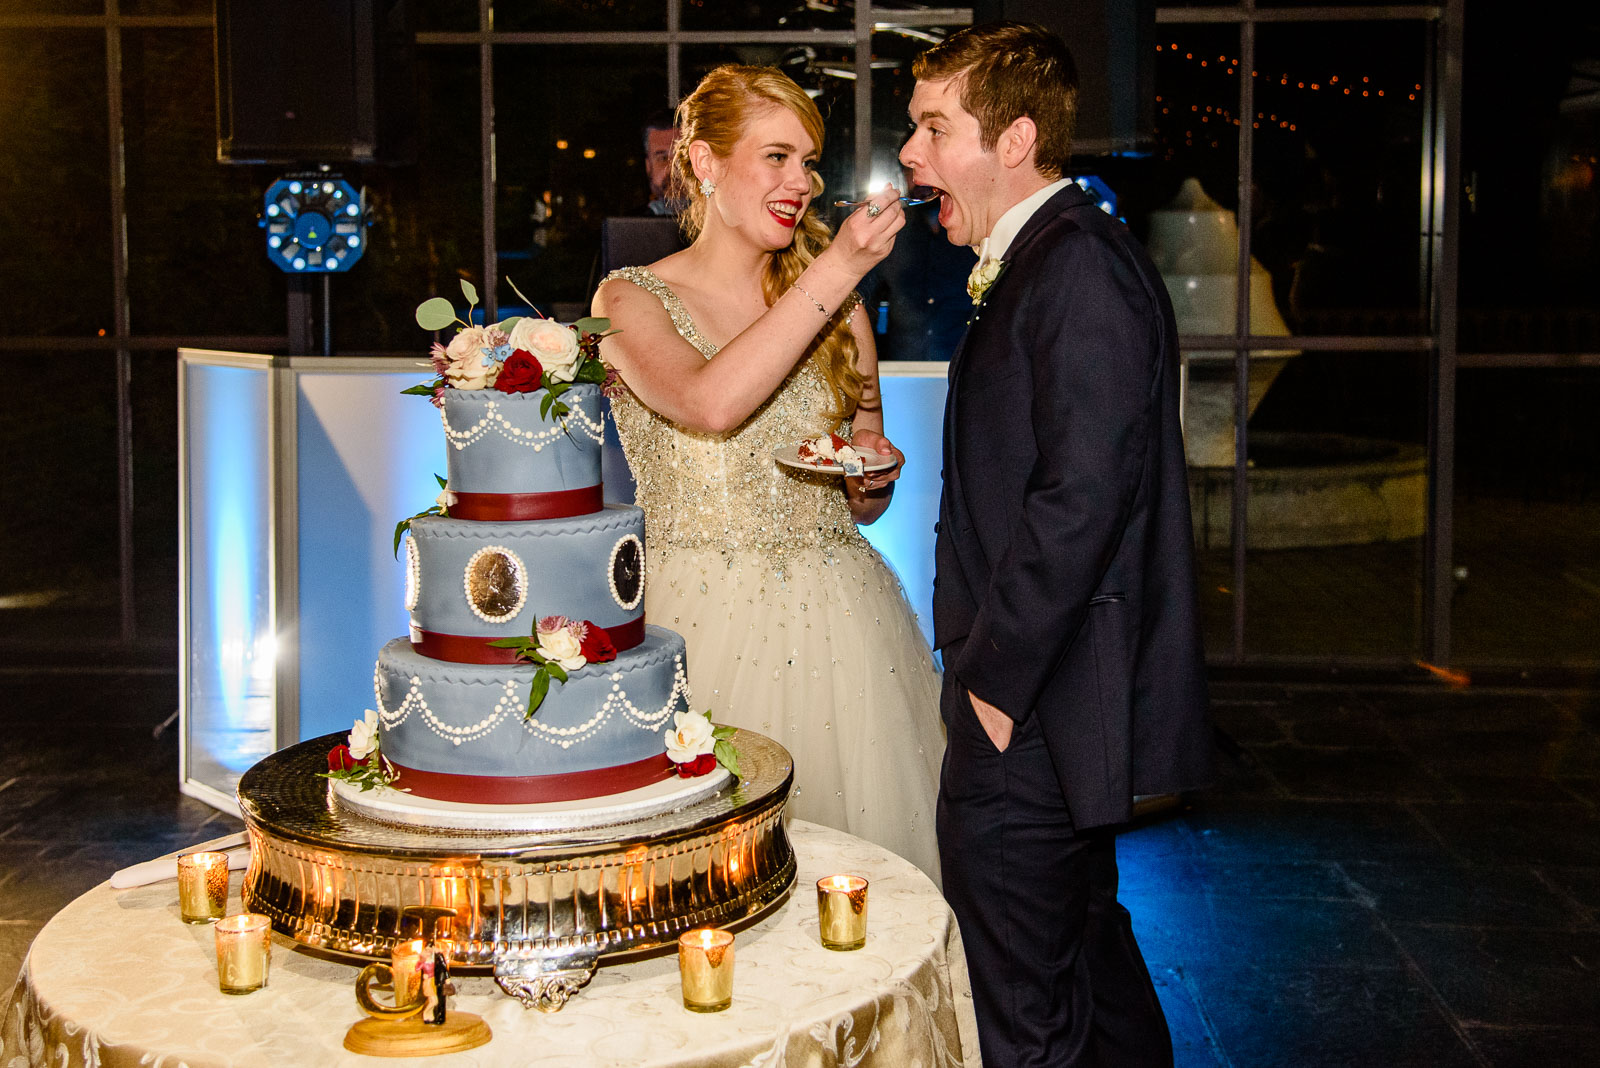 NYIT de Seversky Mansion Wedding cake cutting